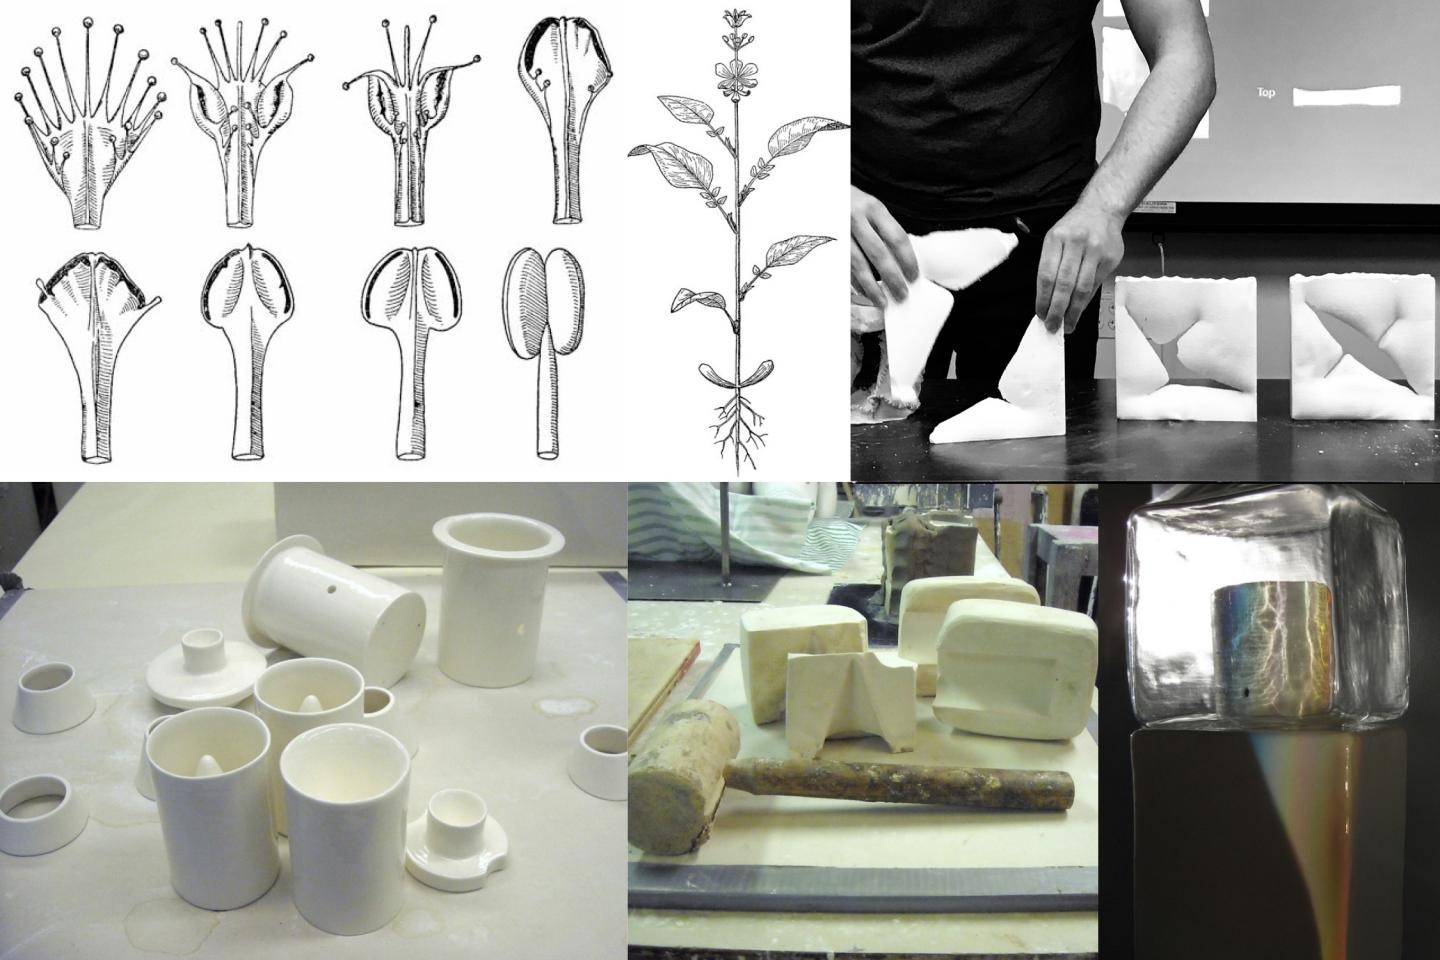 A composite of five images of drawings of plant stages, plaster fasts, and tools